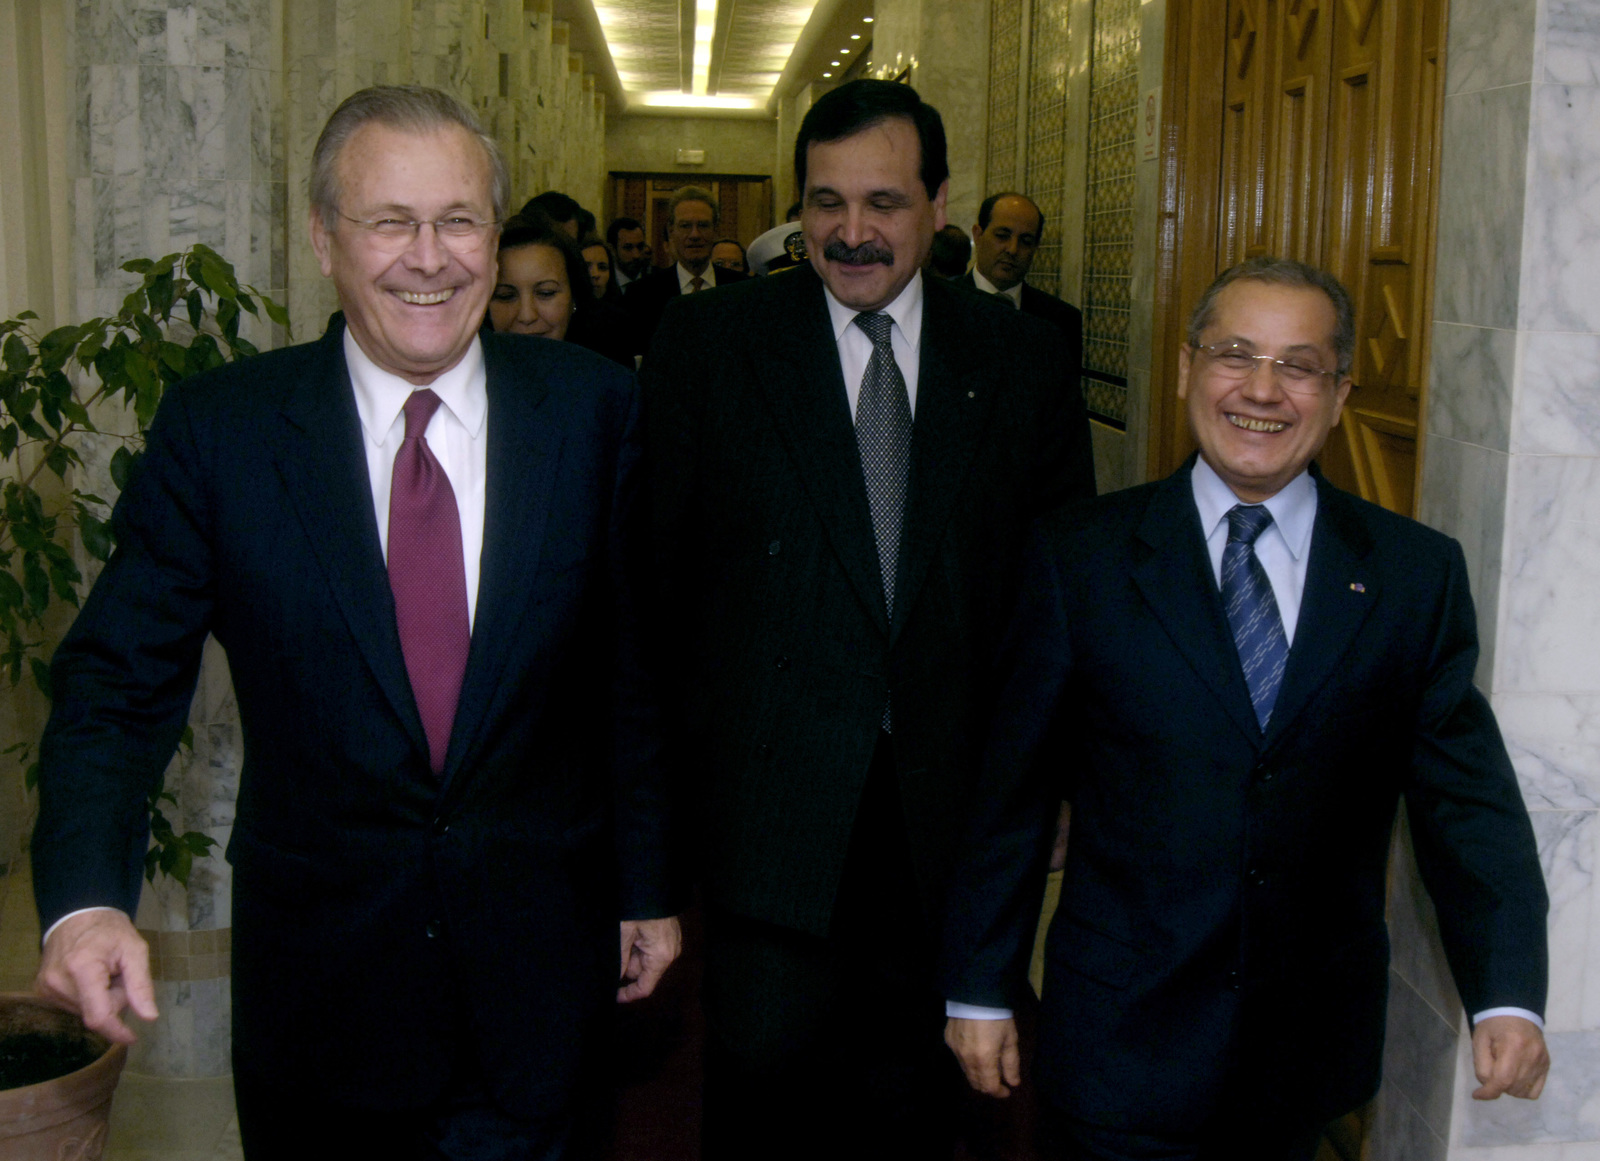 The Honorable Donald H. Rumsfeld, left, U.S. Secretary of Defense, and Tunisian Minister of Foreign Affairs Abdelwahab Abdallah are all smiles while on their way to a bilateral meeting in Tunis, Tunisia, on Feb 11, 2006. Sec. Rumsfeld is on a tour of numerous North African countries after attending the North Atlantic Treaty Organization (NATO) Defense Minister Meeting in Italy. (DoD photo by PETTY Officer 1ST Class Chad J. McNeeley) (Released)